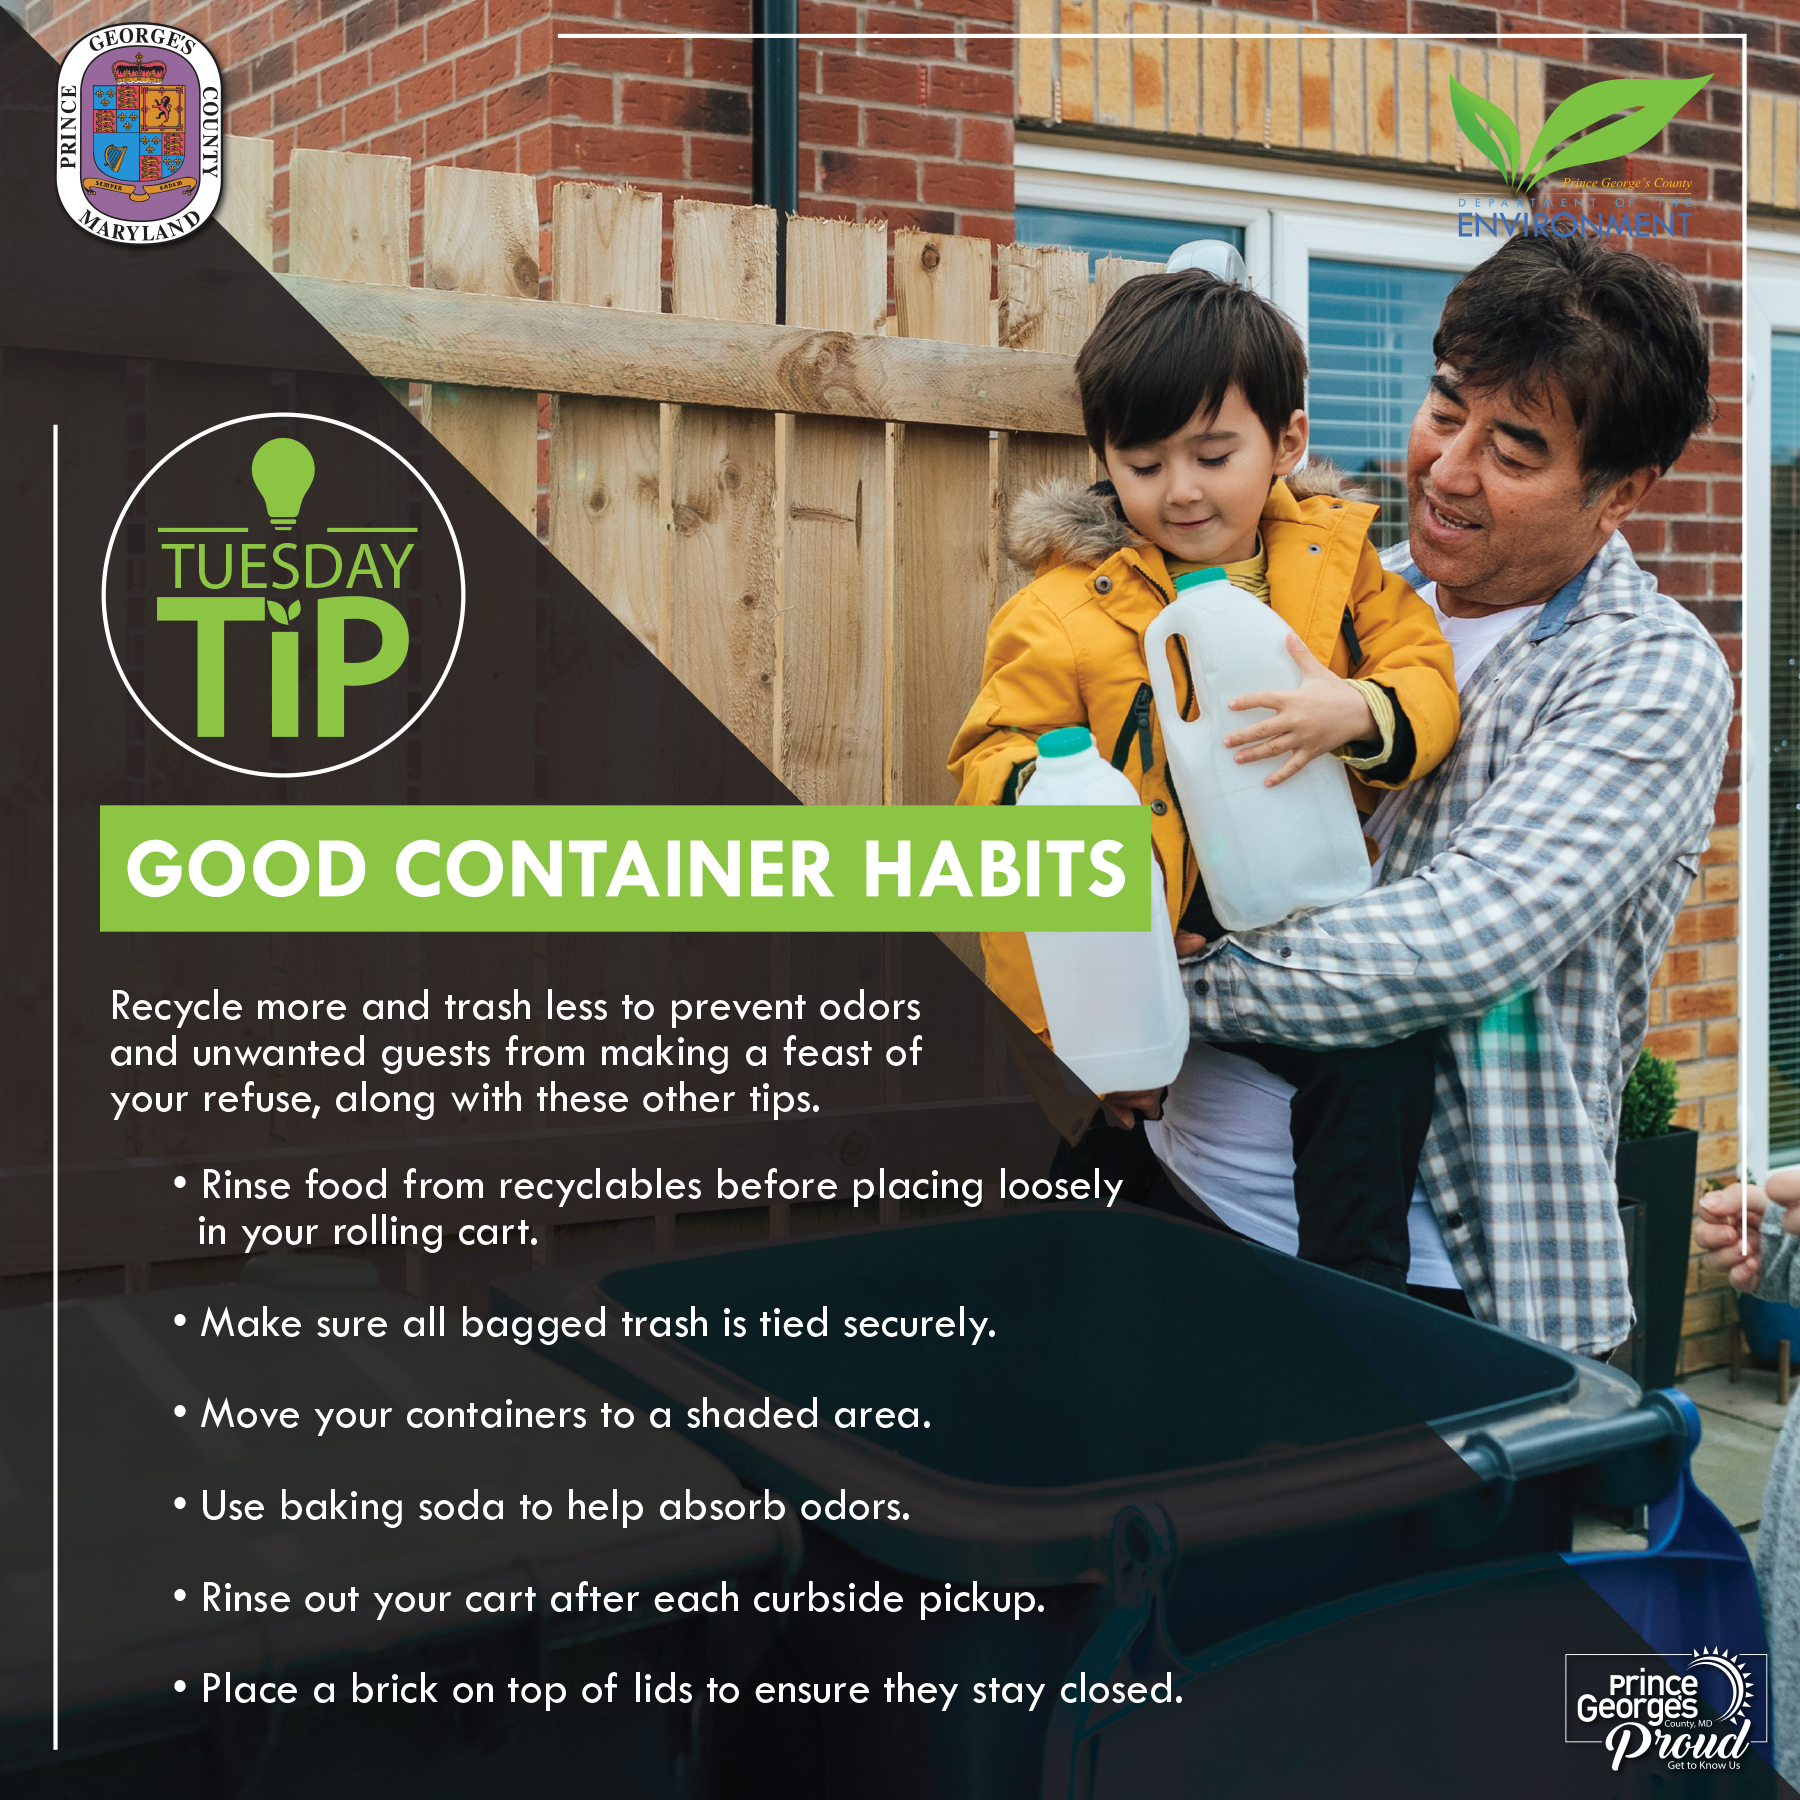 Tues Tip 8.3.21 Good container eng